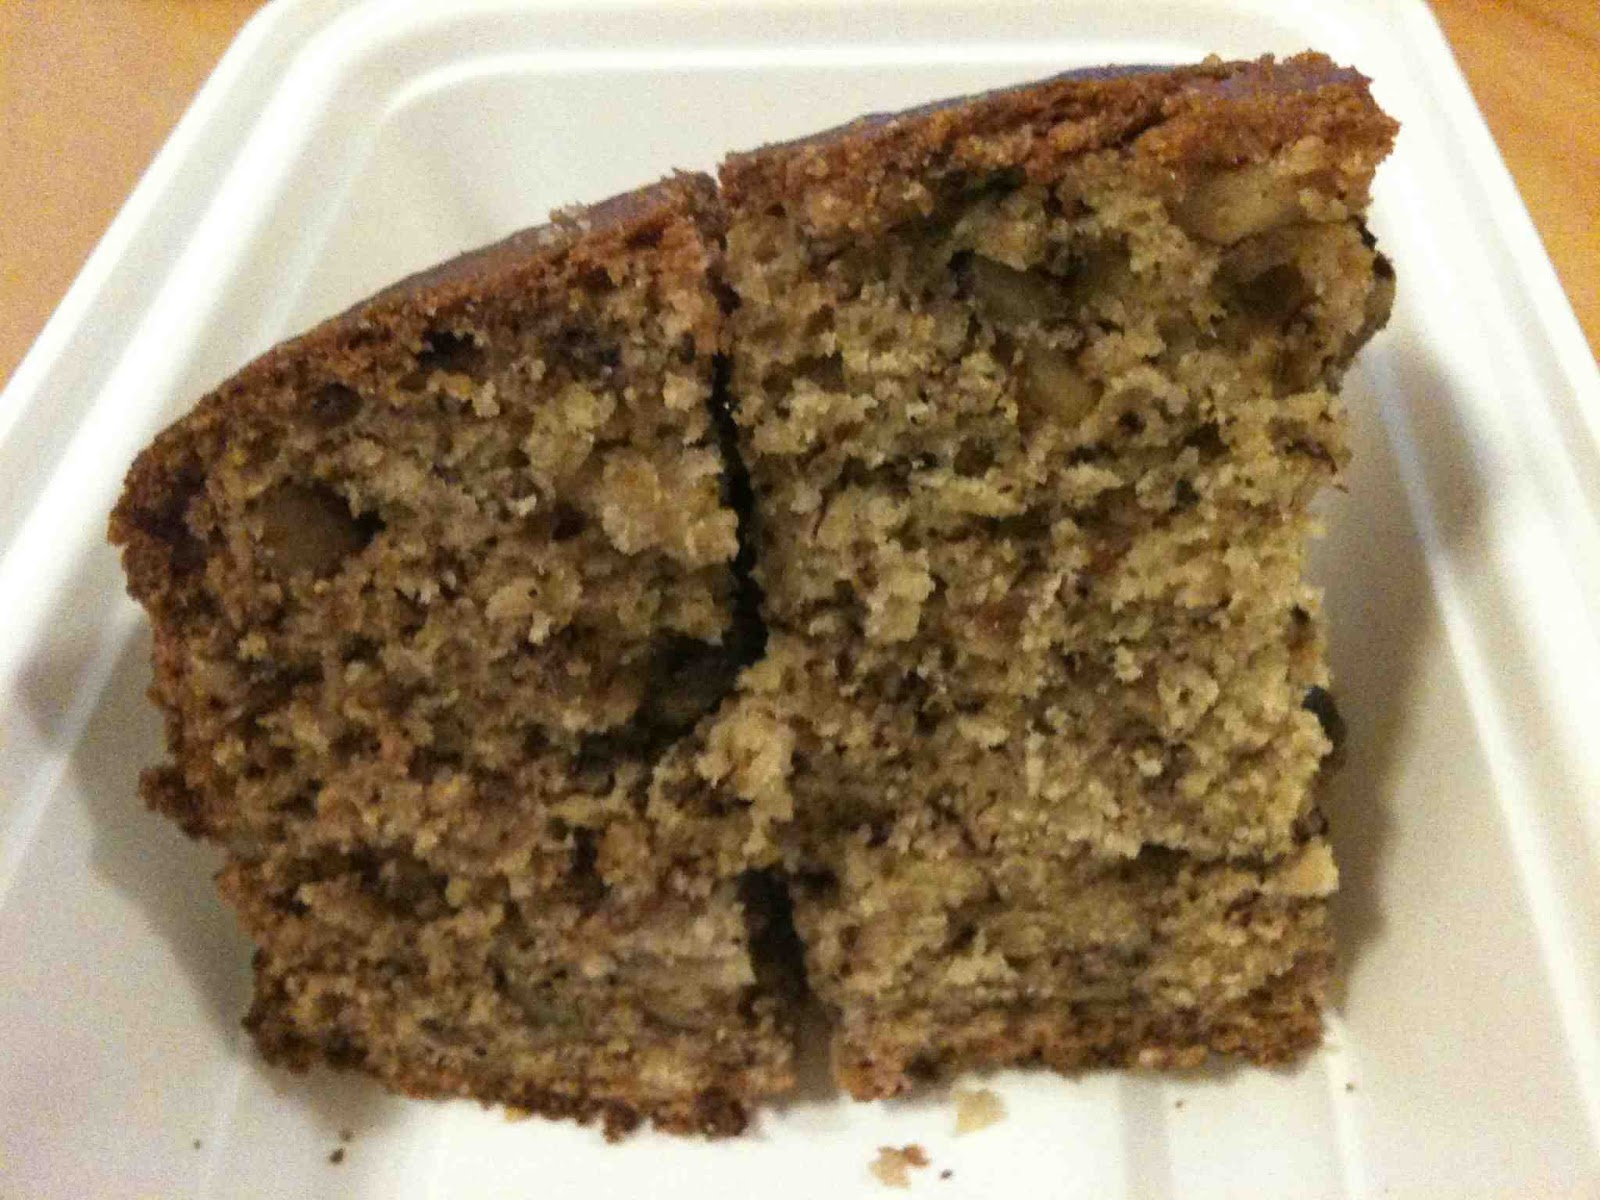 mf eats: Banana walnut cake